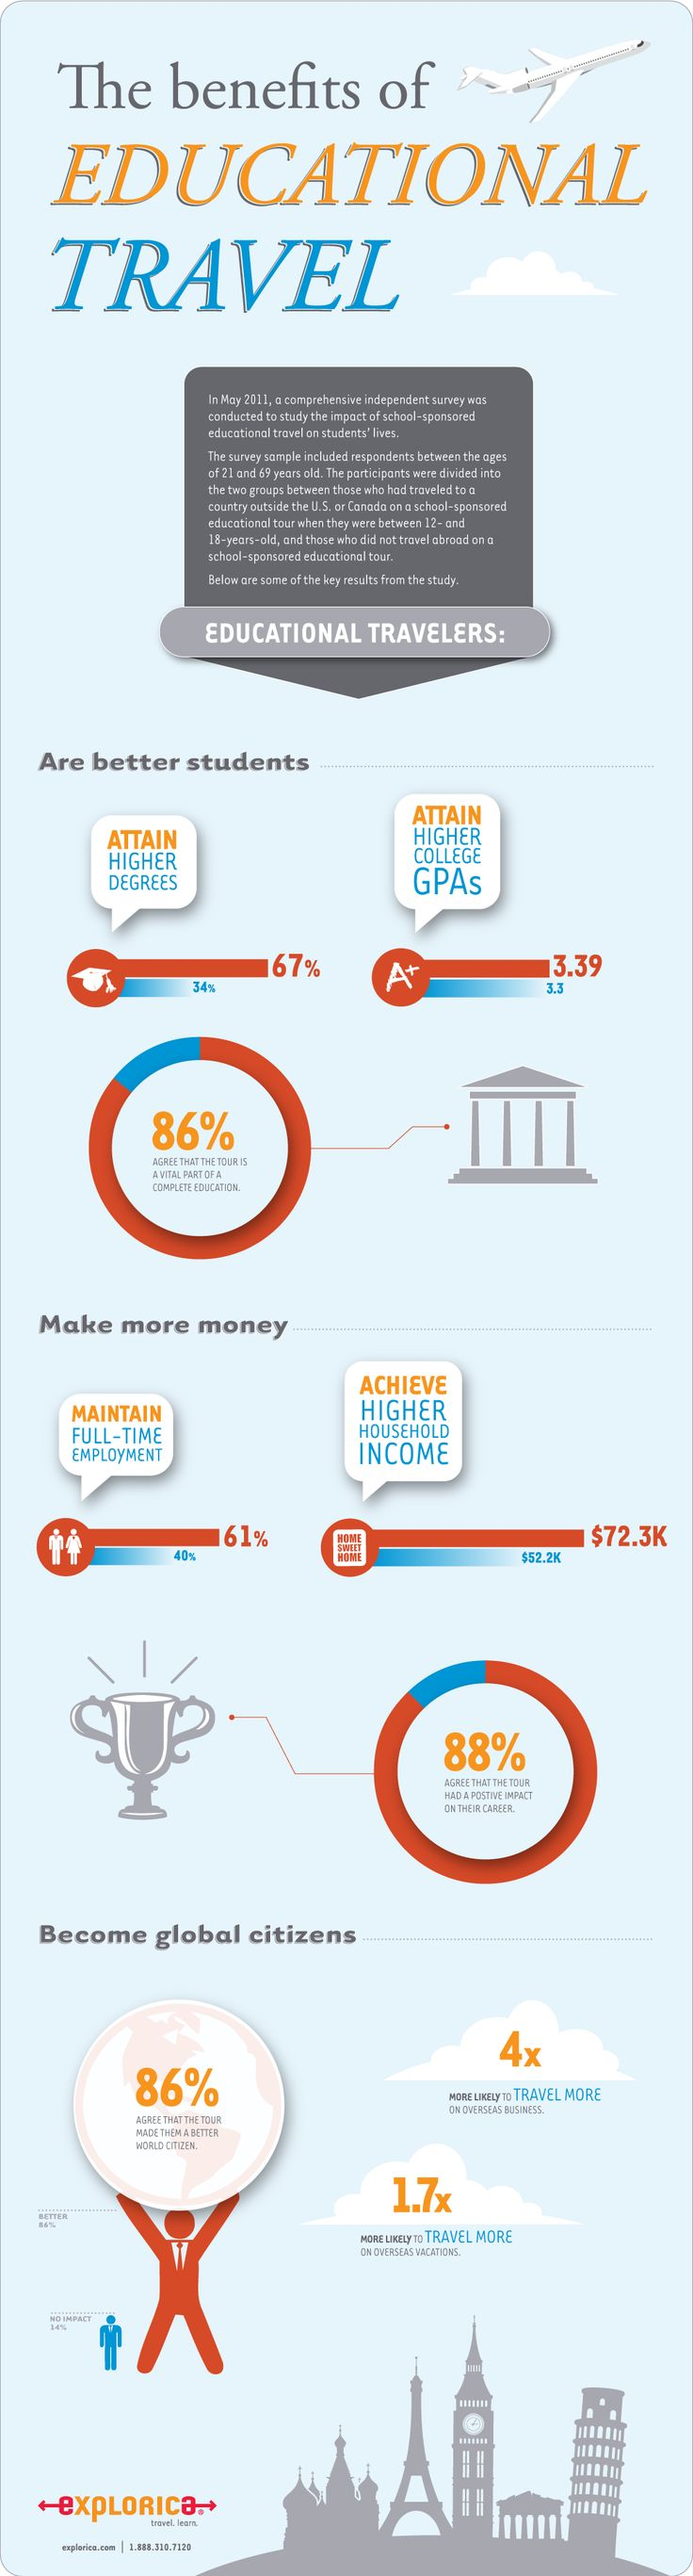 Infographic: The benefits of educational travel.    Educational travelers are better students, achieve higher college GPAs, make more money and become global citizens.